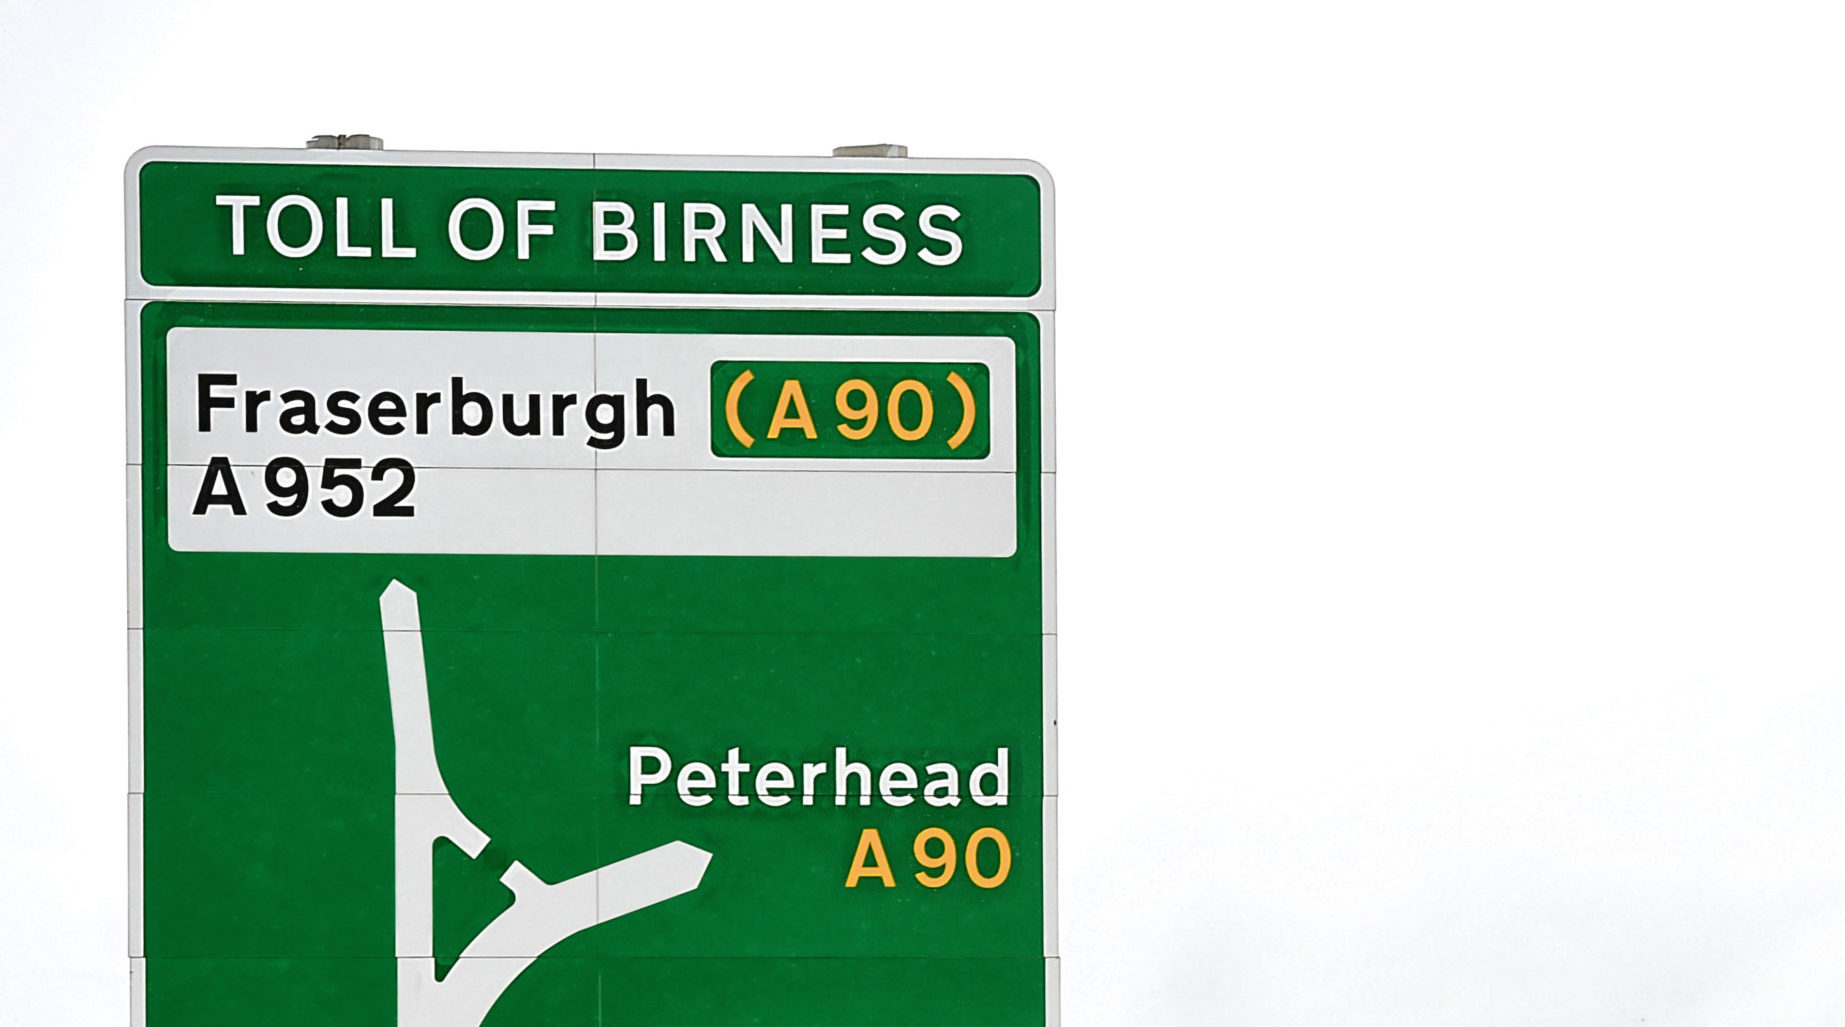 The A90 at the Toll of Birness junction.